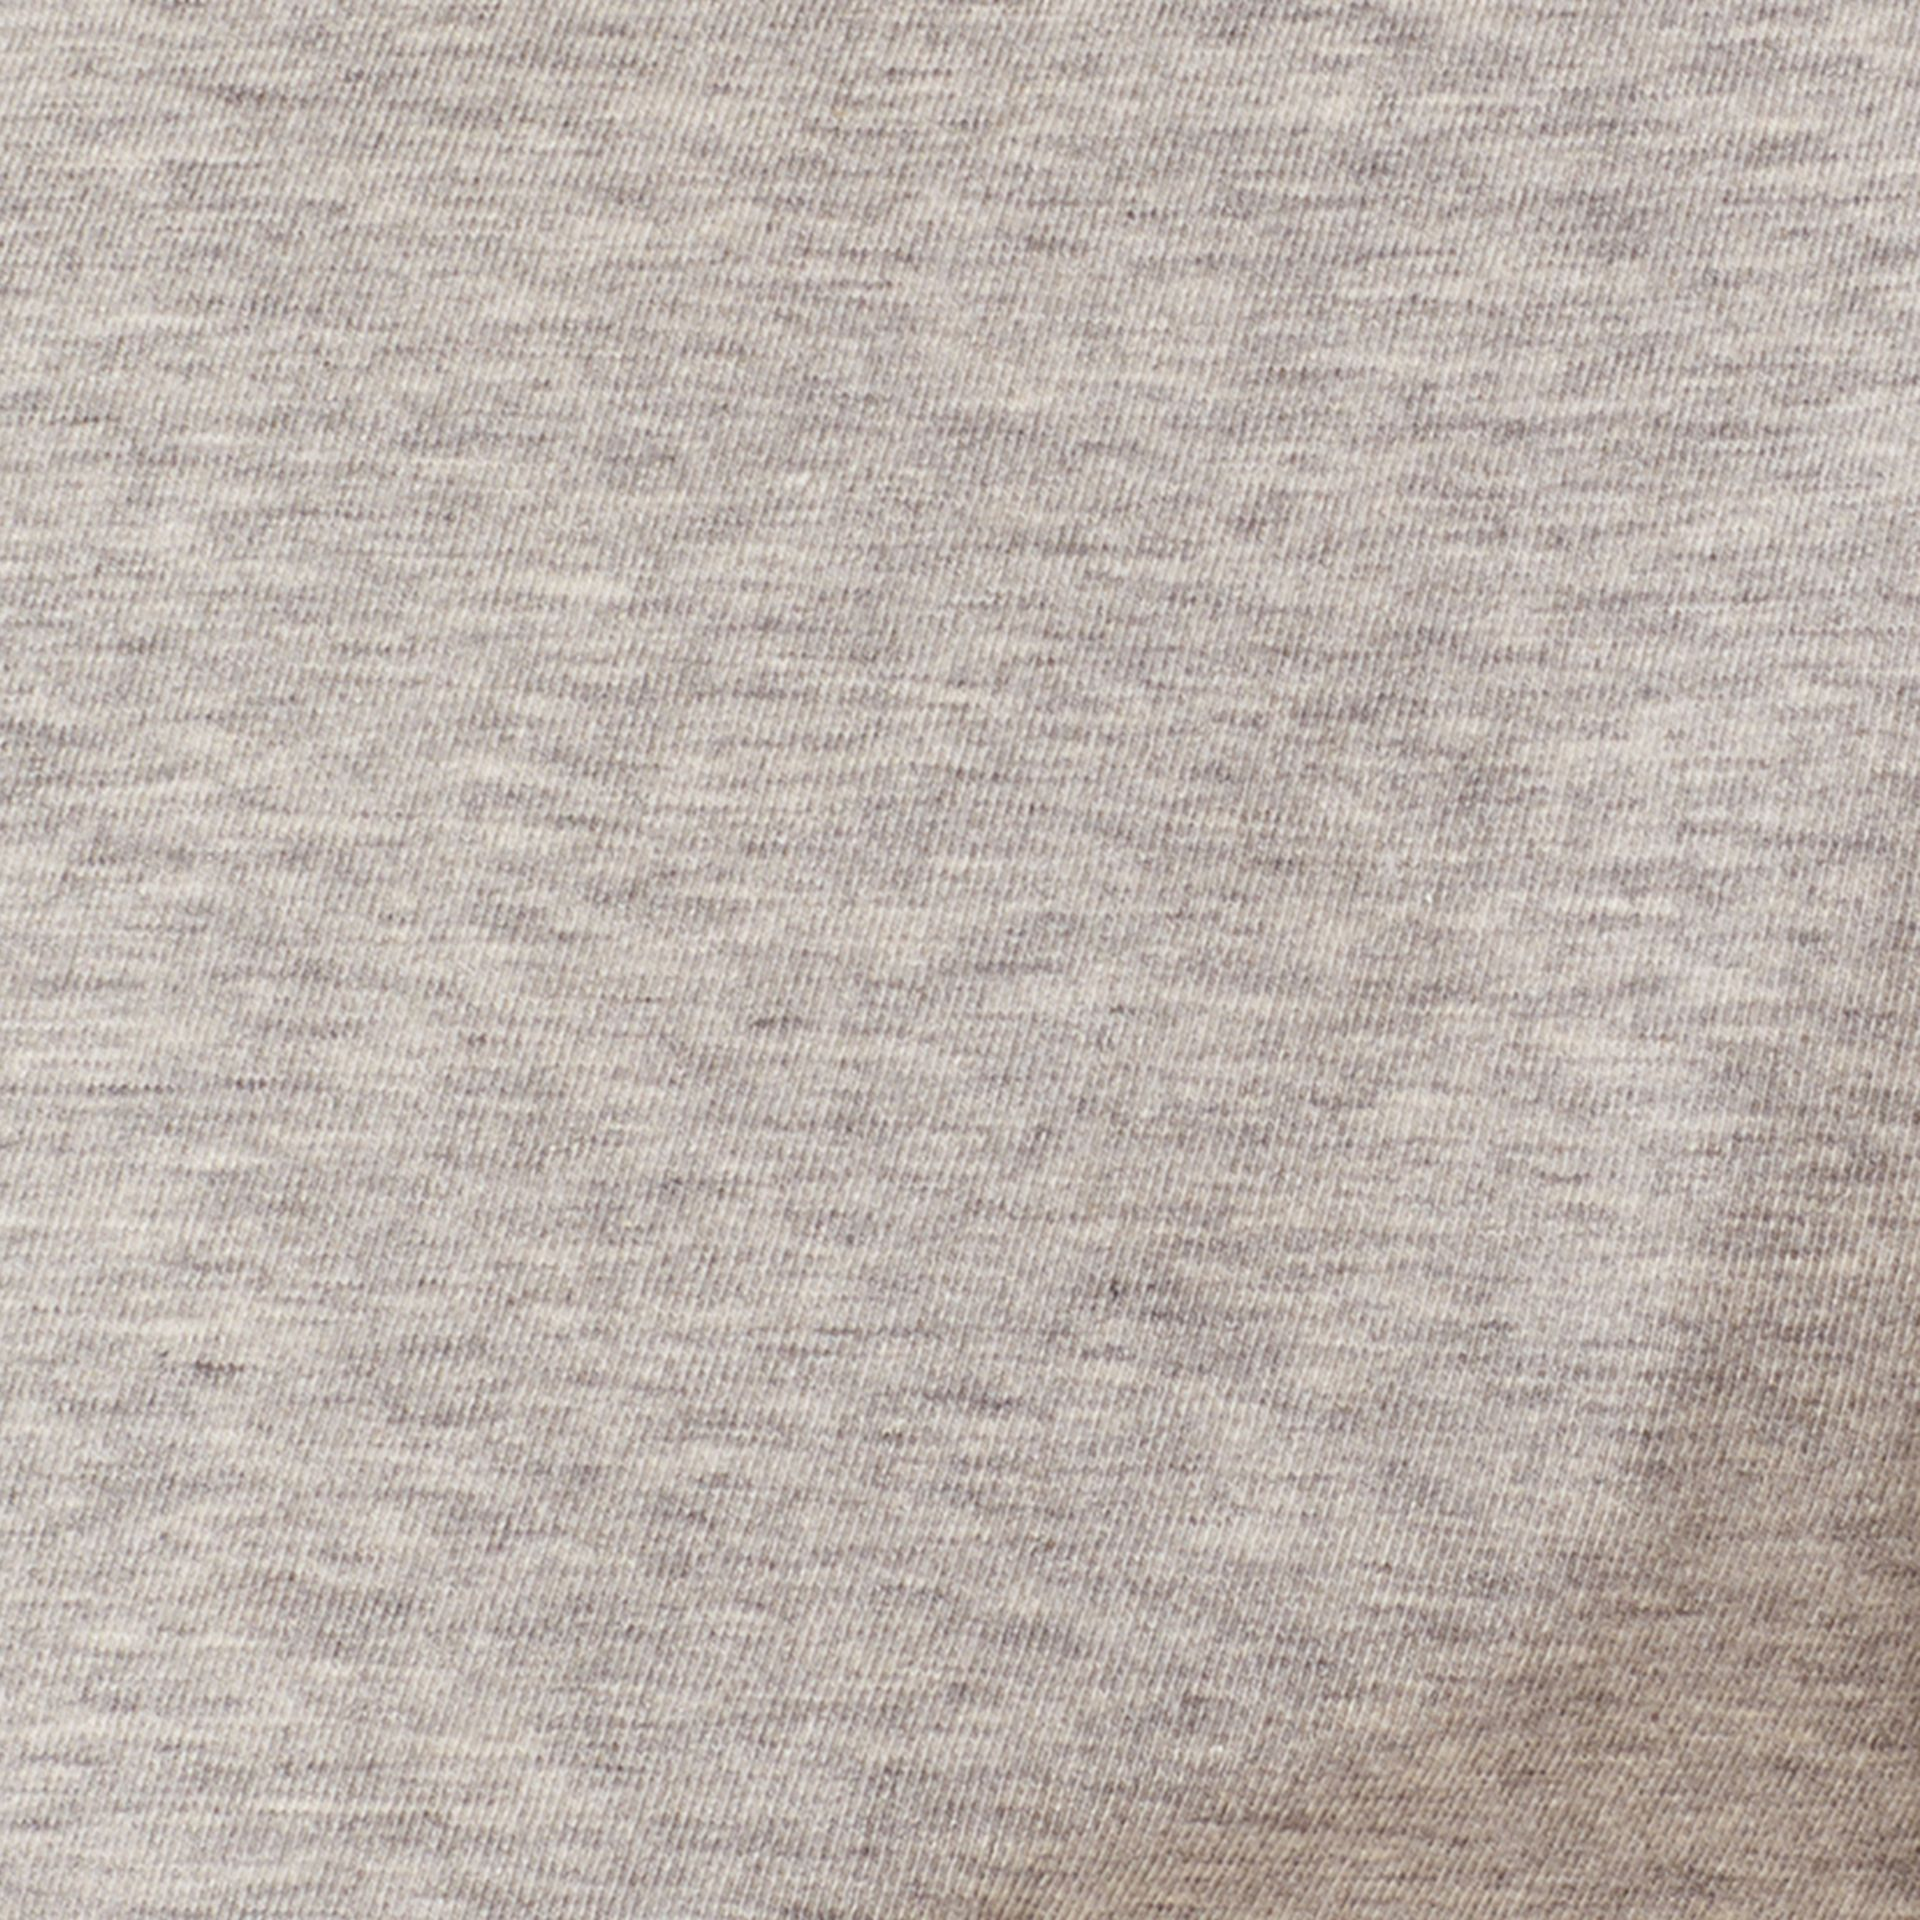 Check Cuff Stretch Cotton T-Shirt Pale Grey Melange - gallery image 2